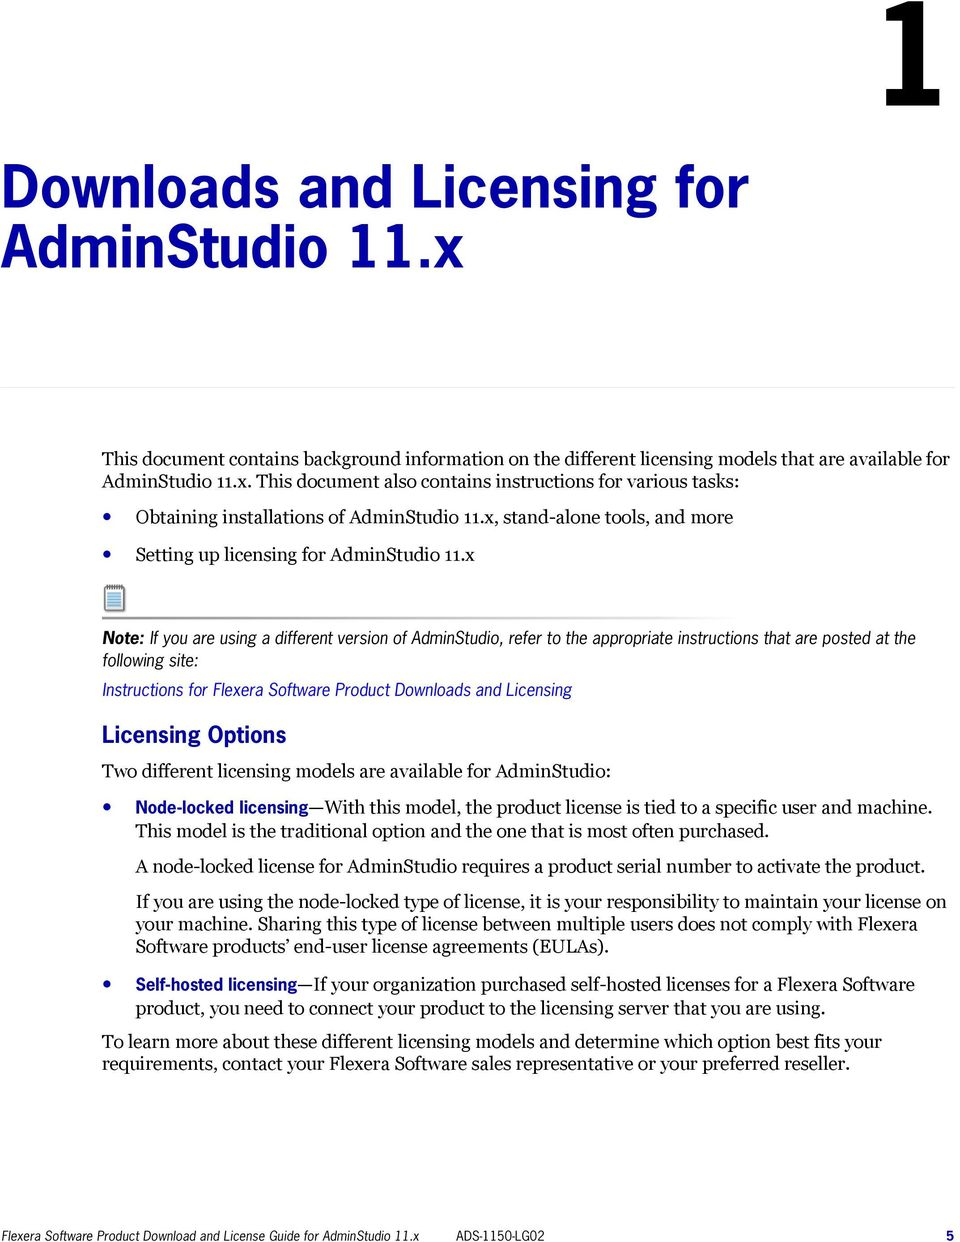 Flexera Software Product Download and License Guide for AdminStudio